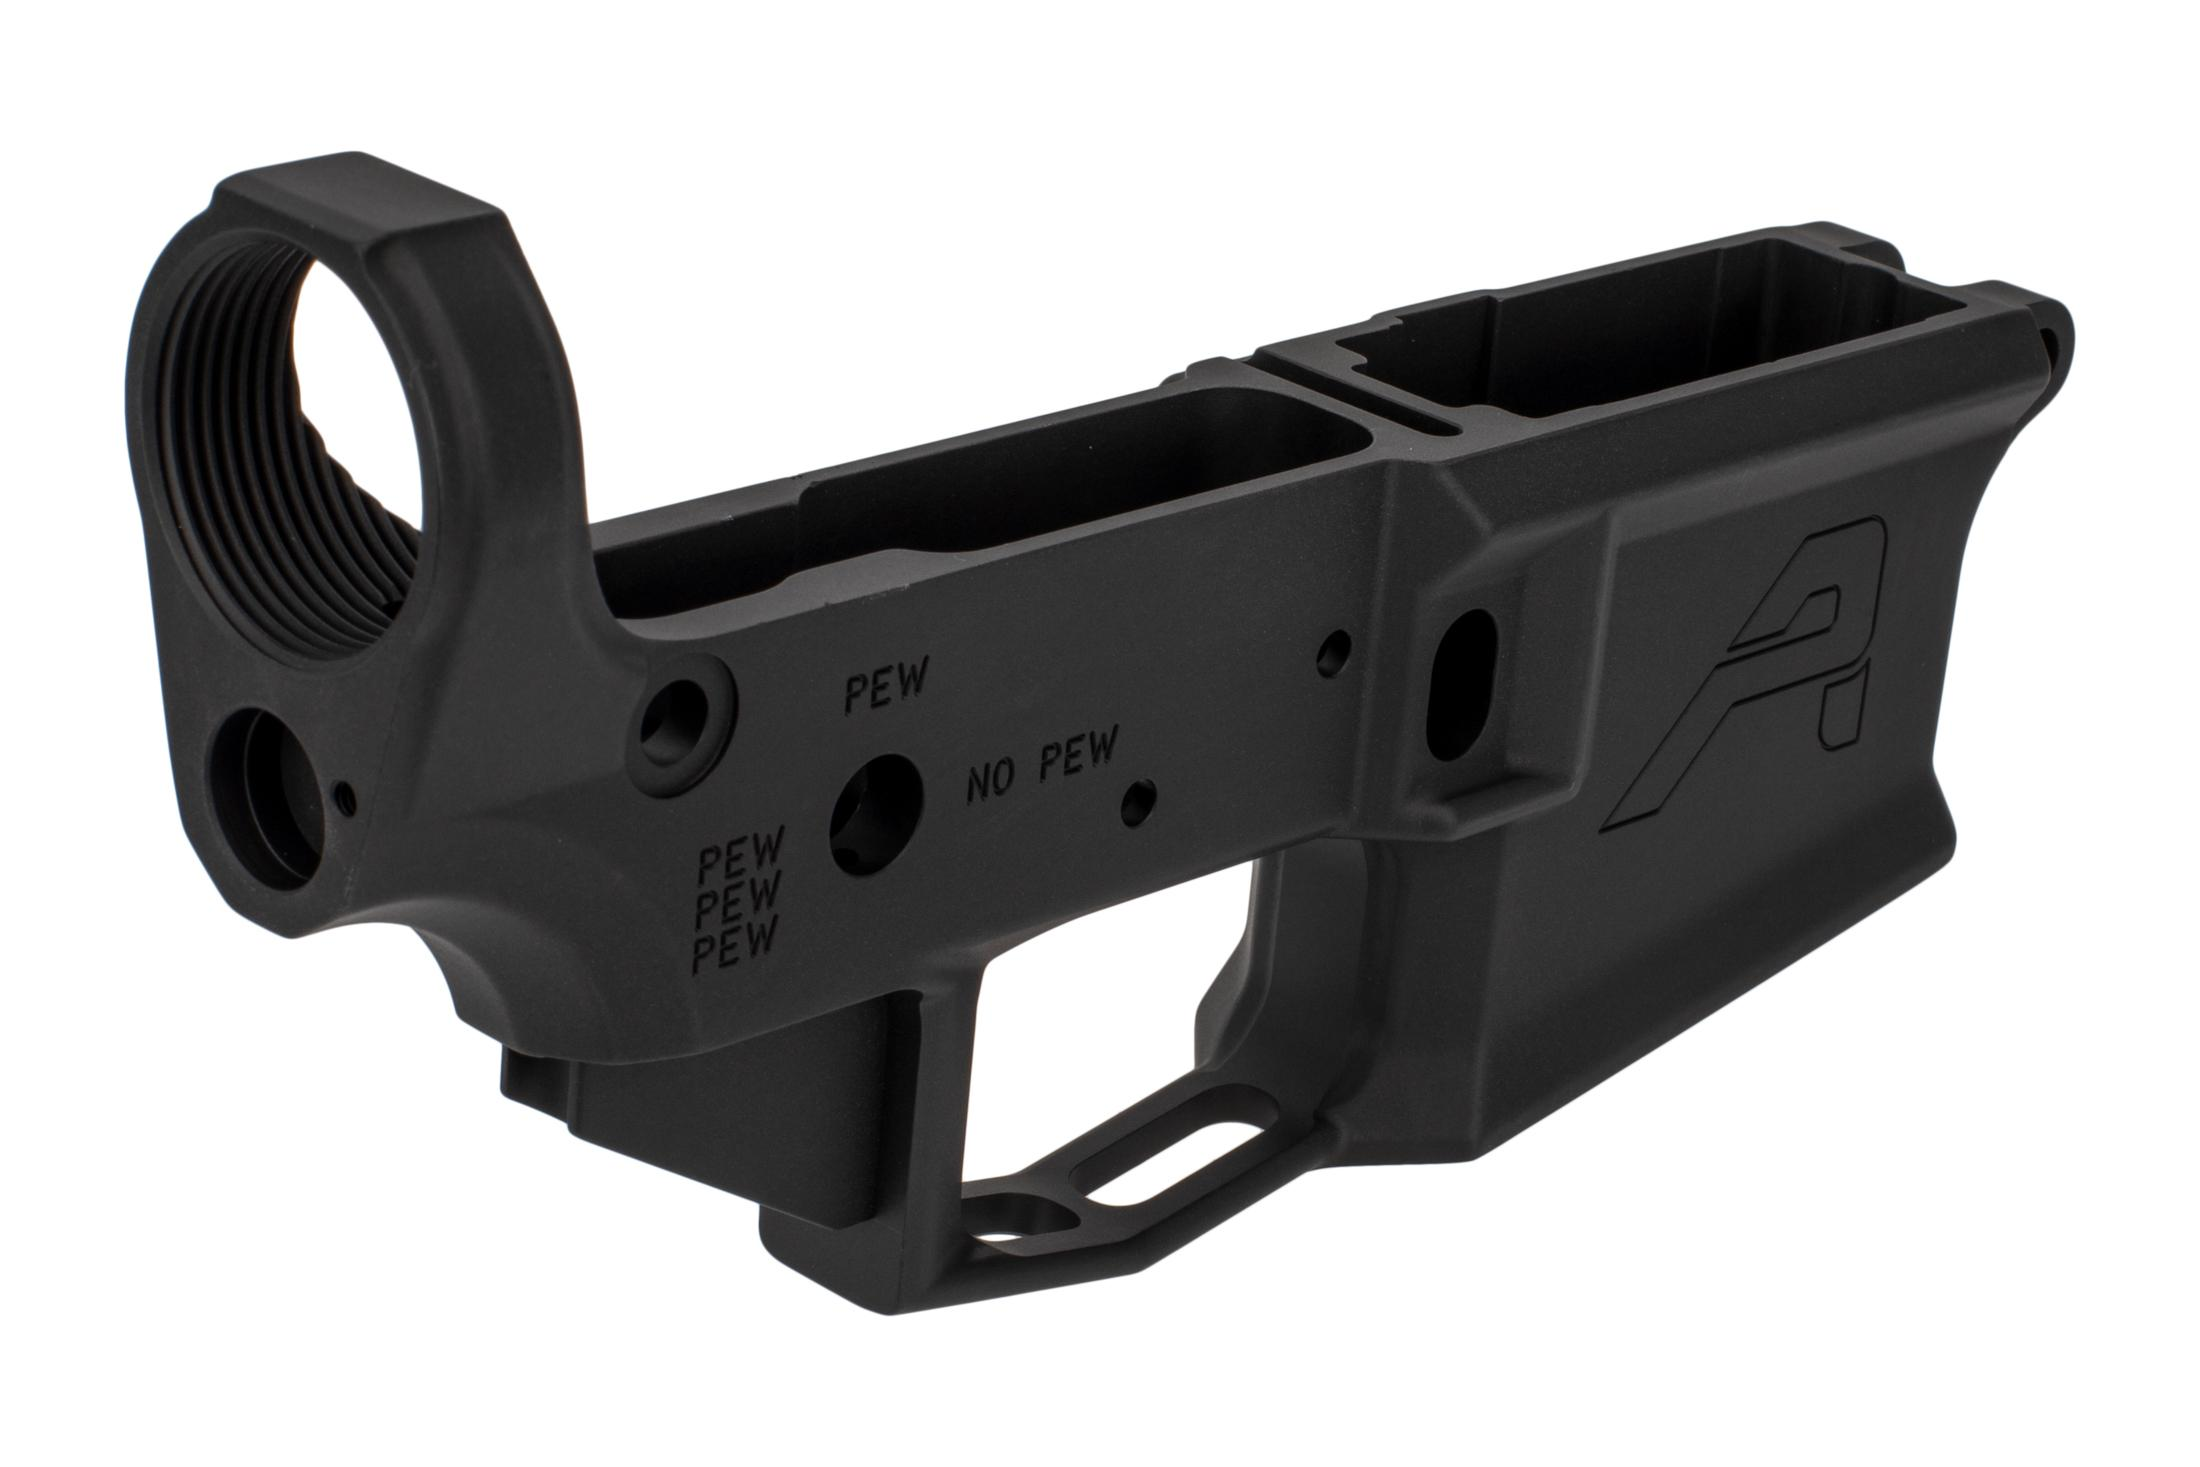 The Aero Precision M4E1 AR15 stripped lower with PEW markings features a threaded rear takedown pin detent hole